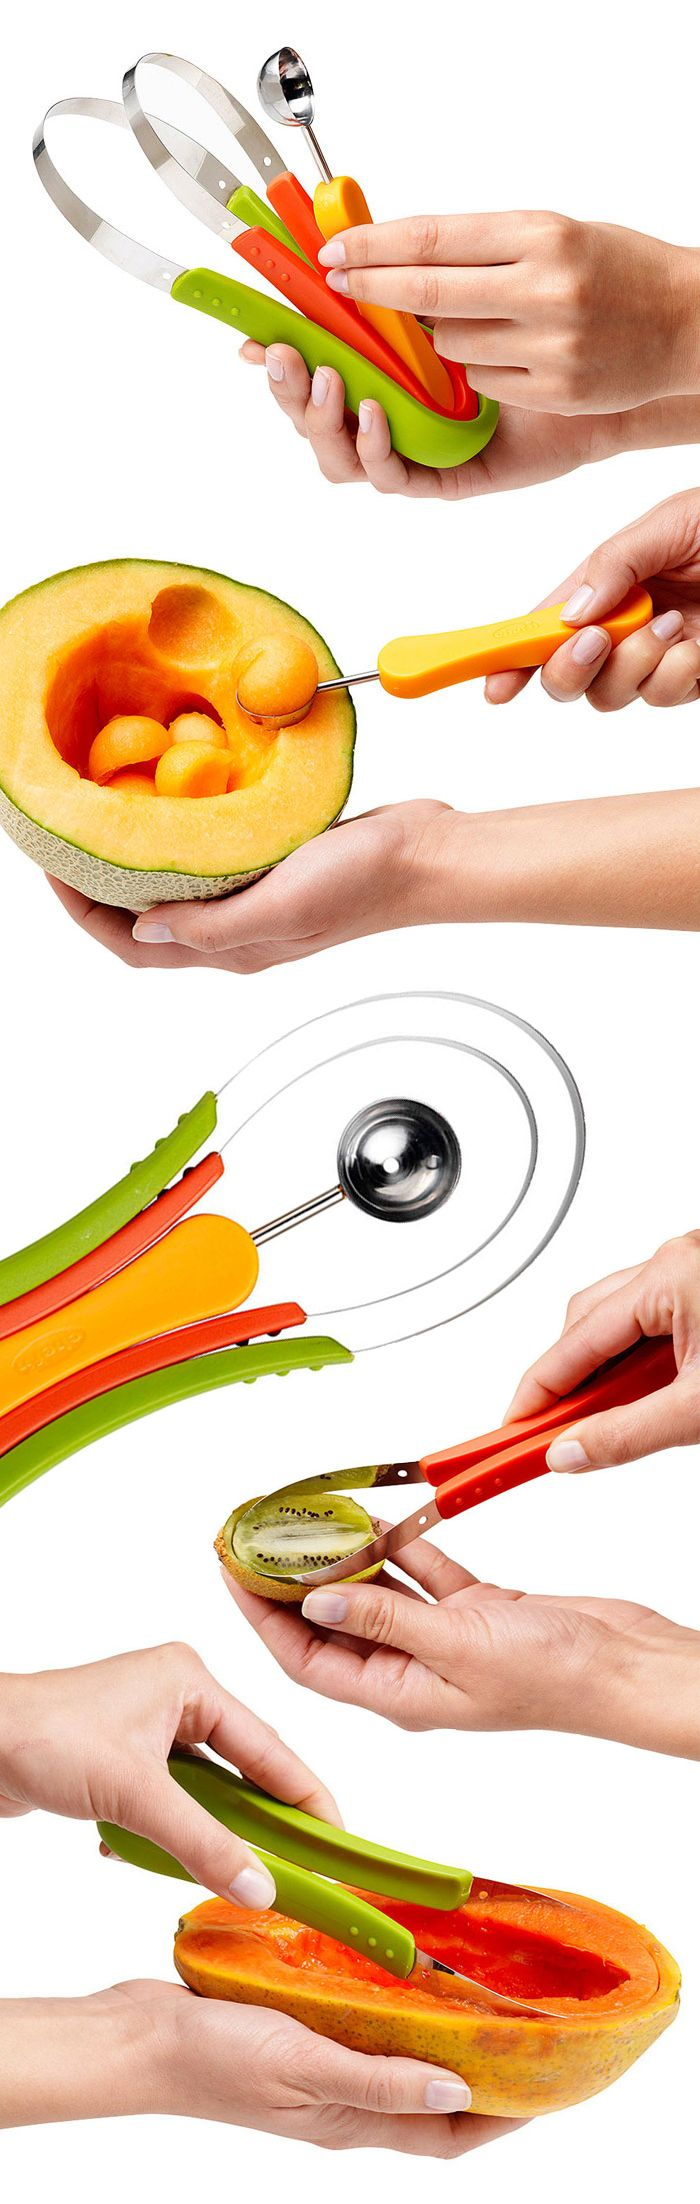 Fruit scoop set with melon baller - makes preparing fruit salad easy #product_design